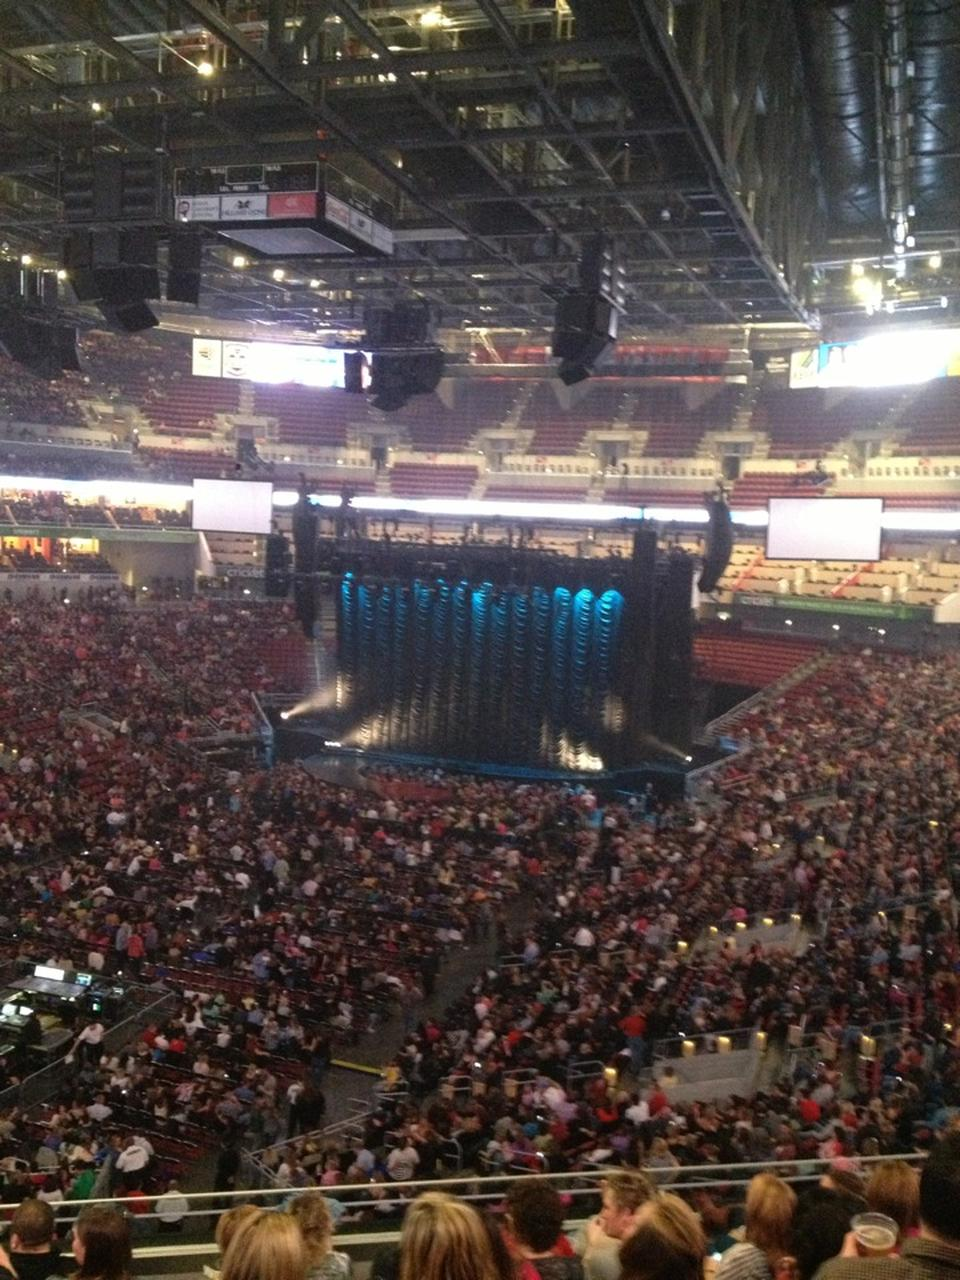 Kfc Yum Center Section 209 Concert Seating